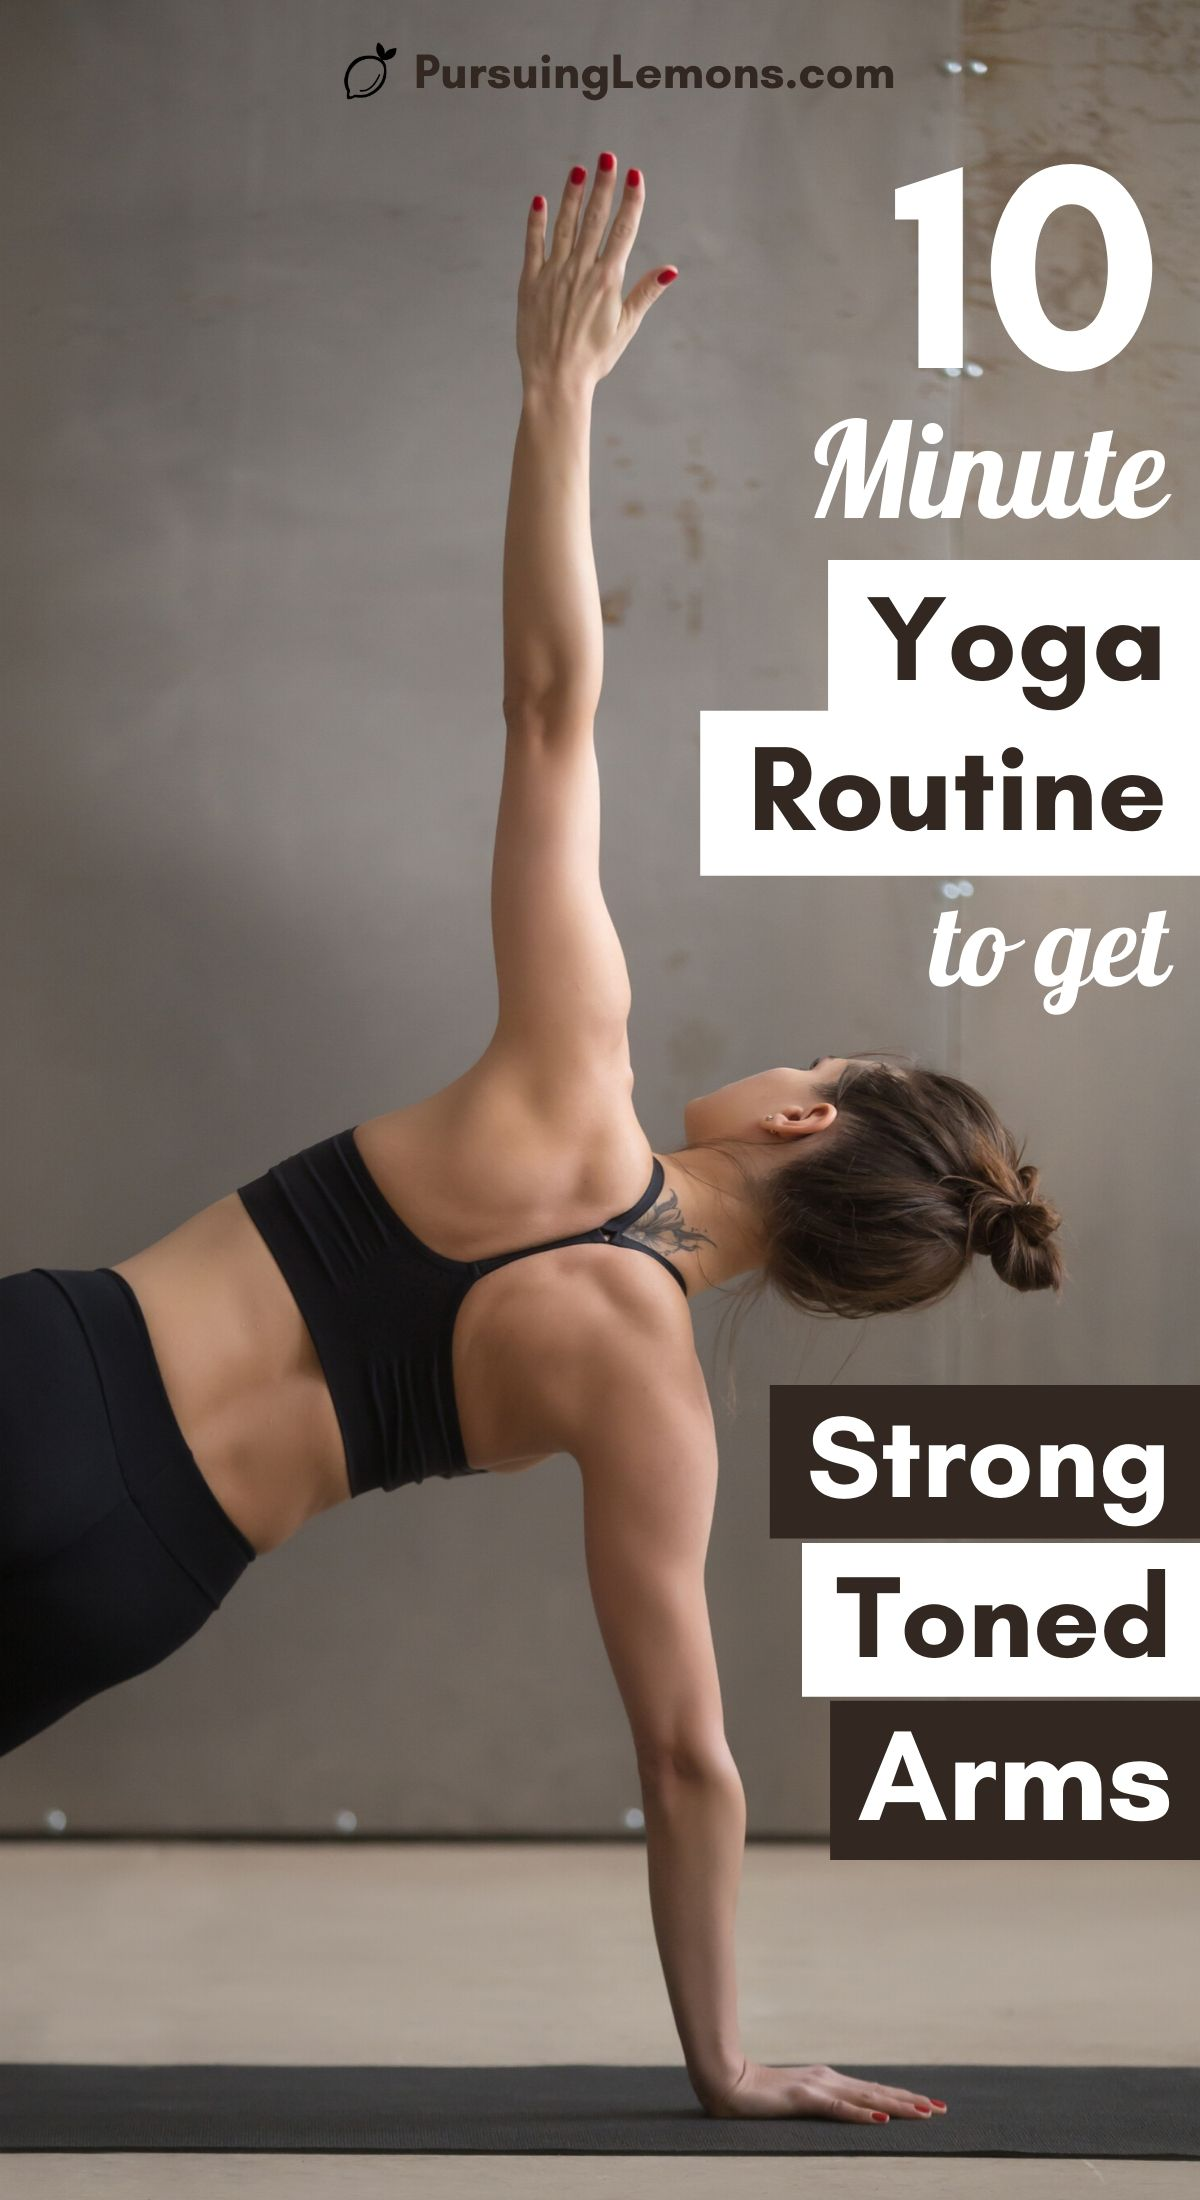 10 Minute Yoga Routine to Get Strong and Toned Arms : yoga toned arms | yoga for toned arms | yoga for arms | arm workout | arm fat exercises | arm exercises women | arm workout women  Want to get rid of your flabby arms? Do these simple yoga poses for toned arms in this yoga routine every day.  #yogaforarms #armworkout